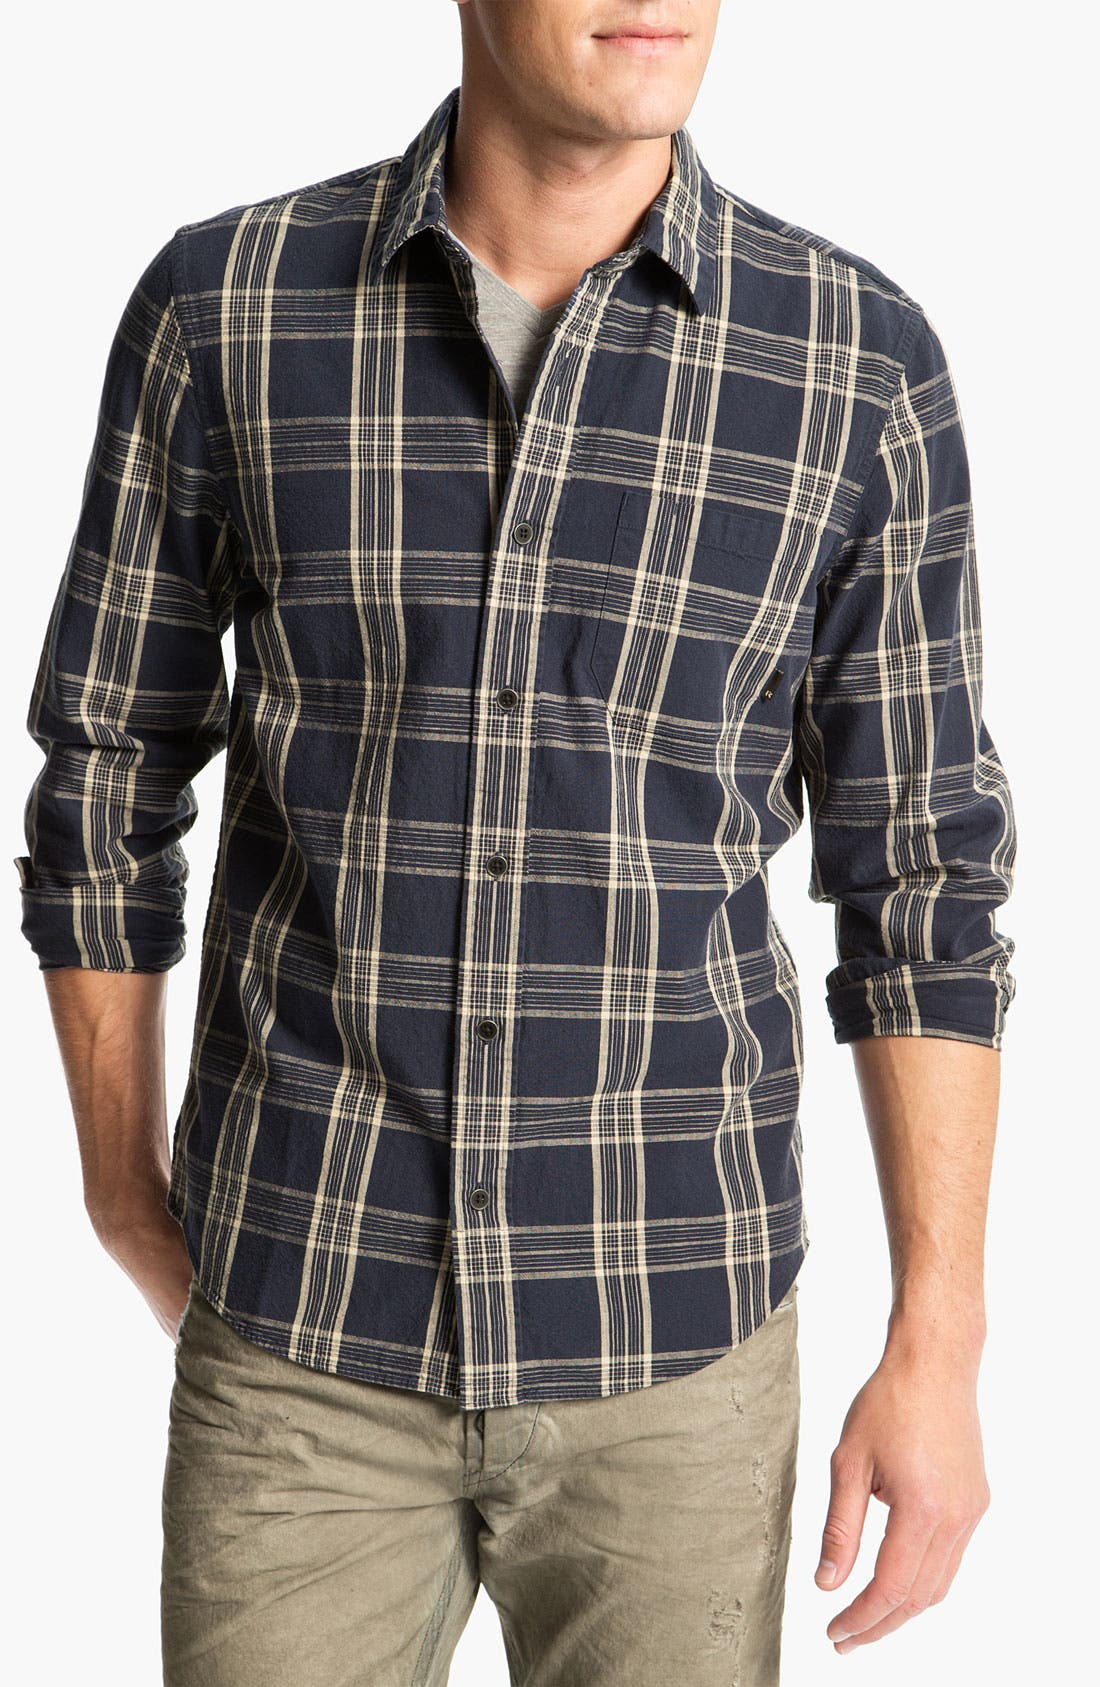 Alternate Image 1 Selected - R44 Rogan Standard Issue Plaid Woven Shirt